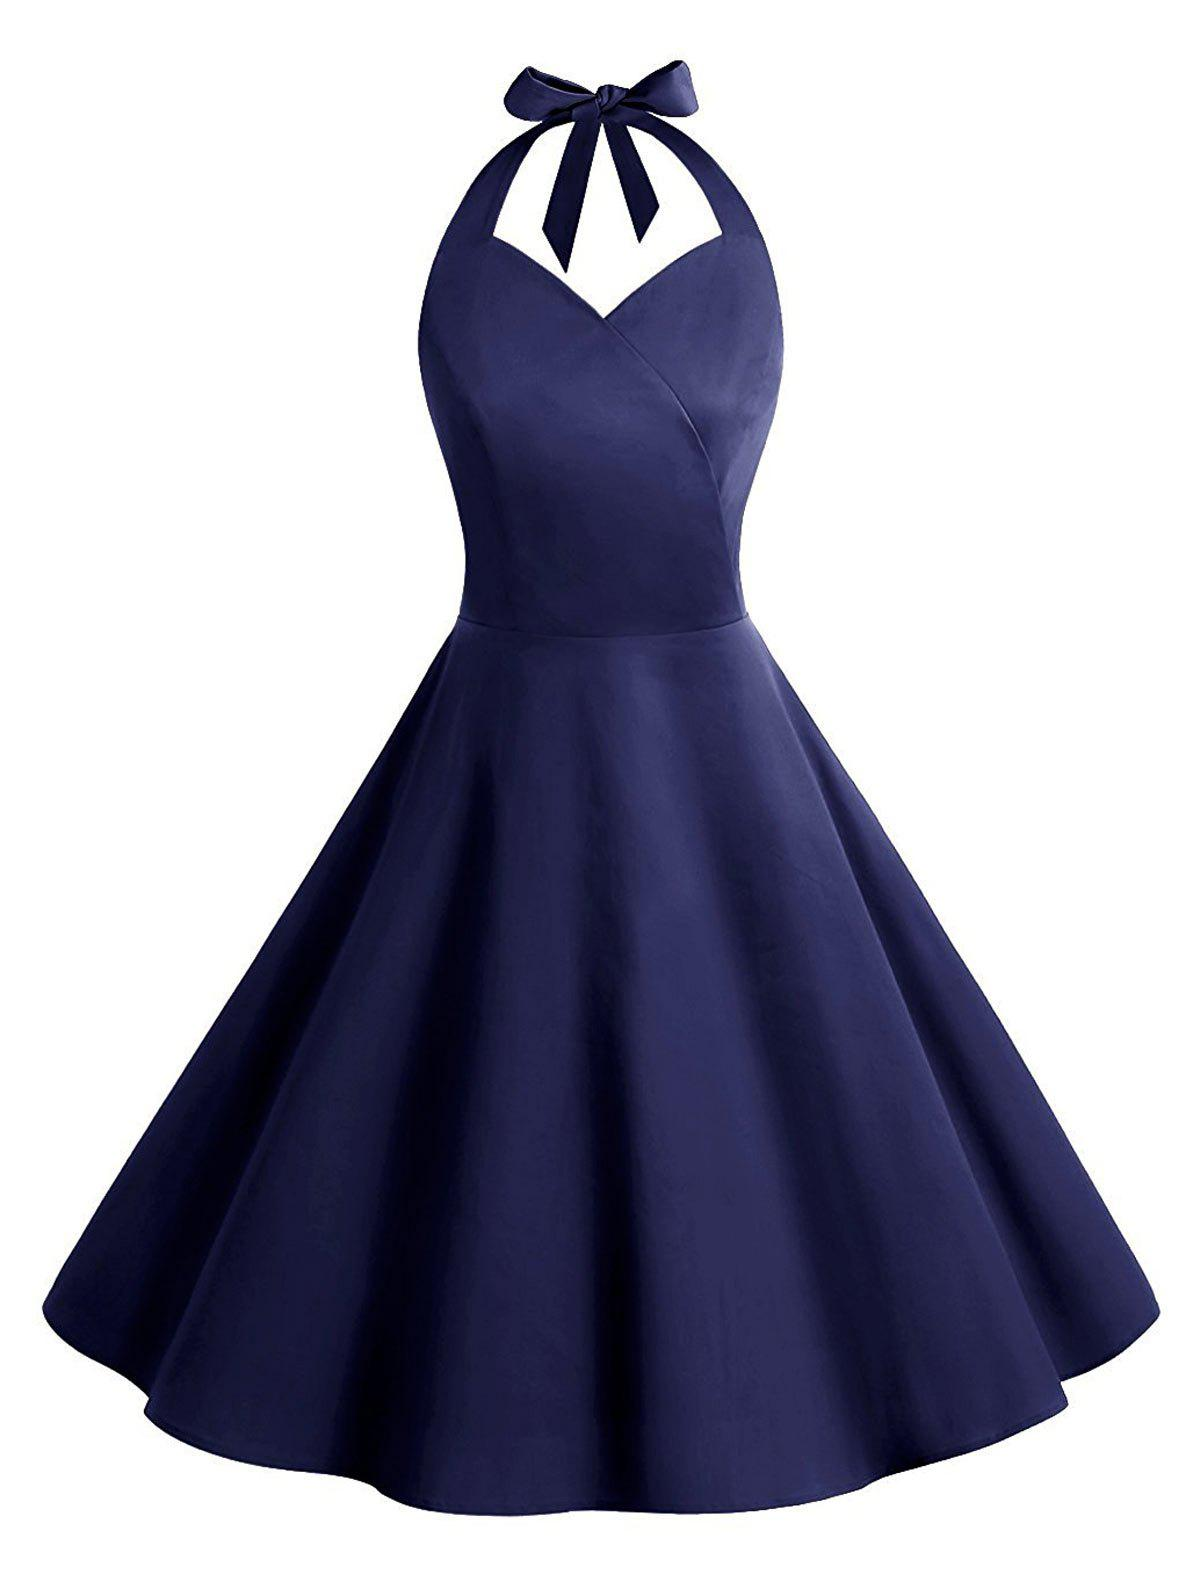 Unique Vintage Backless Halter Skater Party Dress